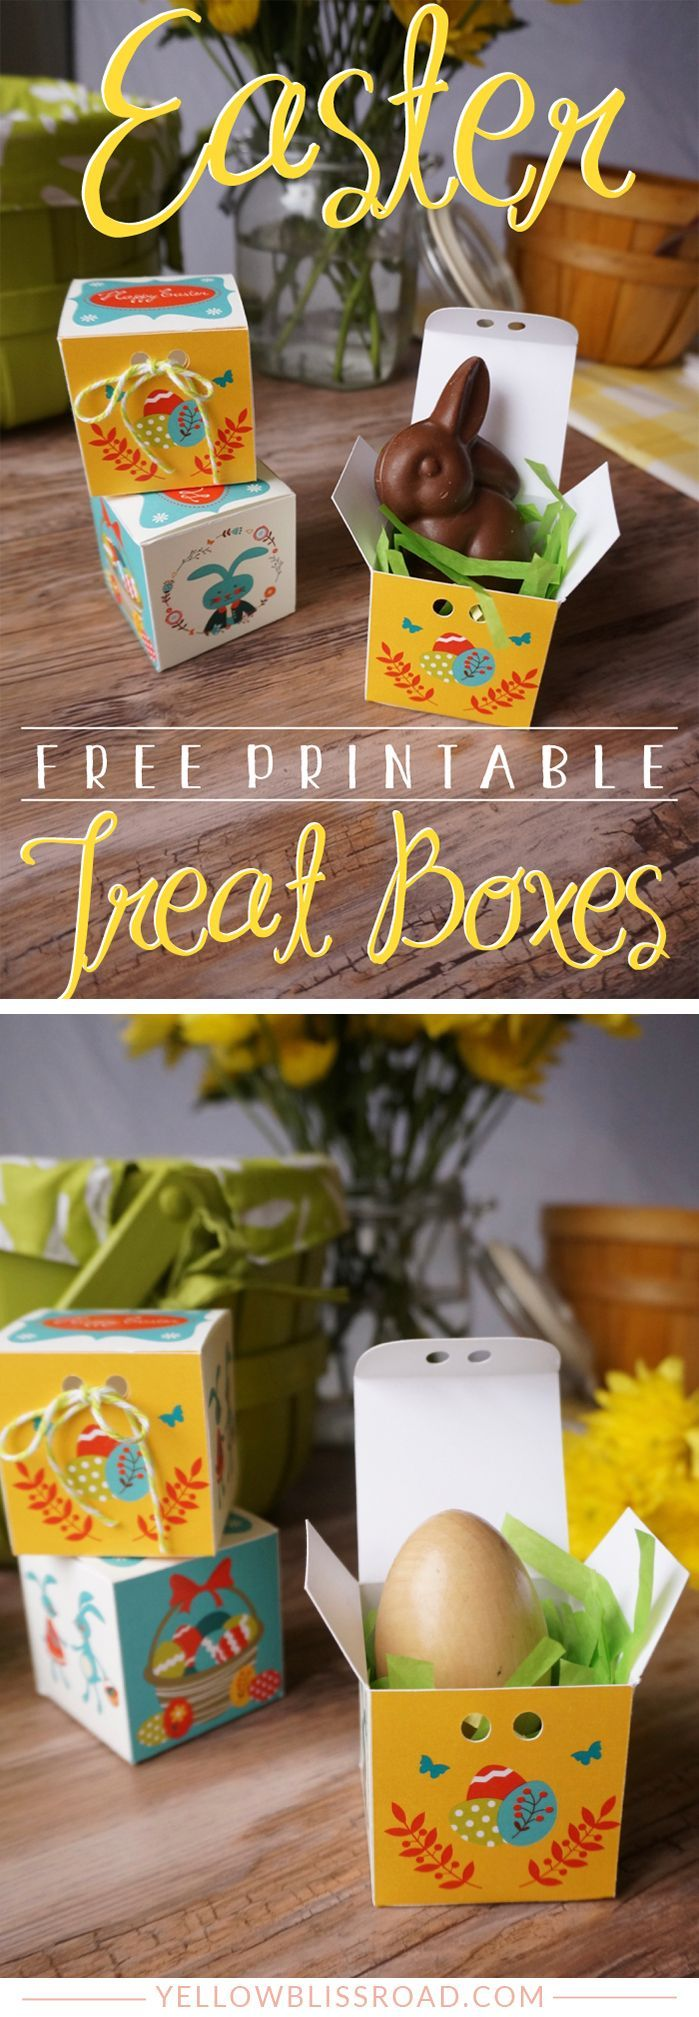 Free printable easter treat boxes free printable easter treat boxes adorable little gift boxes easter printables negle Image collections